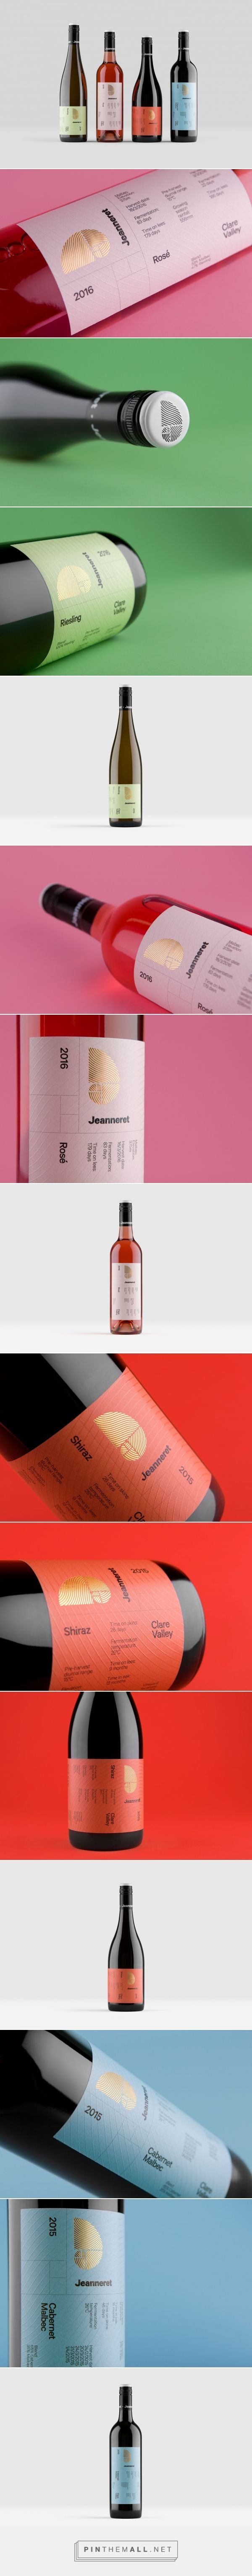 Jeanneret Wines Wine Packaging Design Graphic Design Packaging Wine Bottle Design